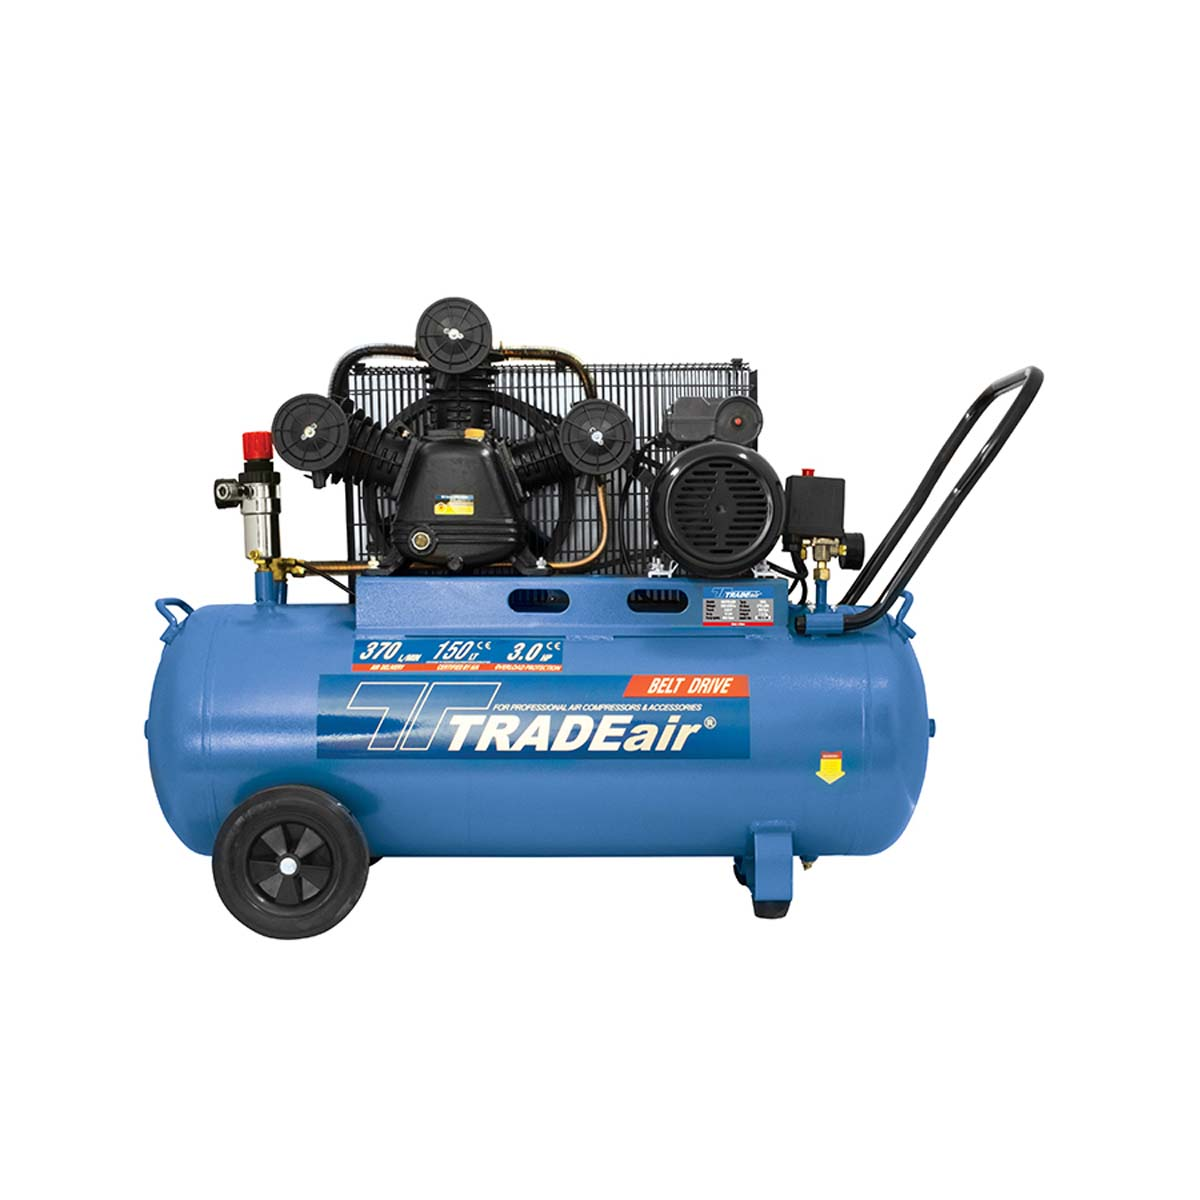 tradeair-mcfrc228-belt-drive-compressor